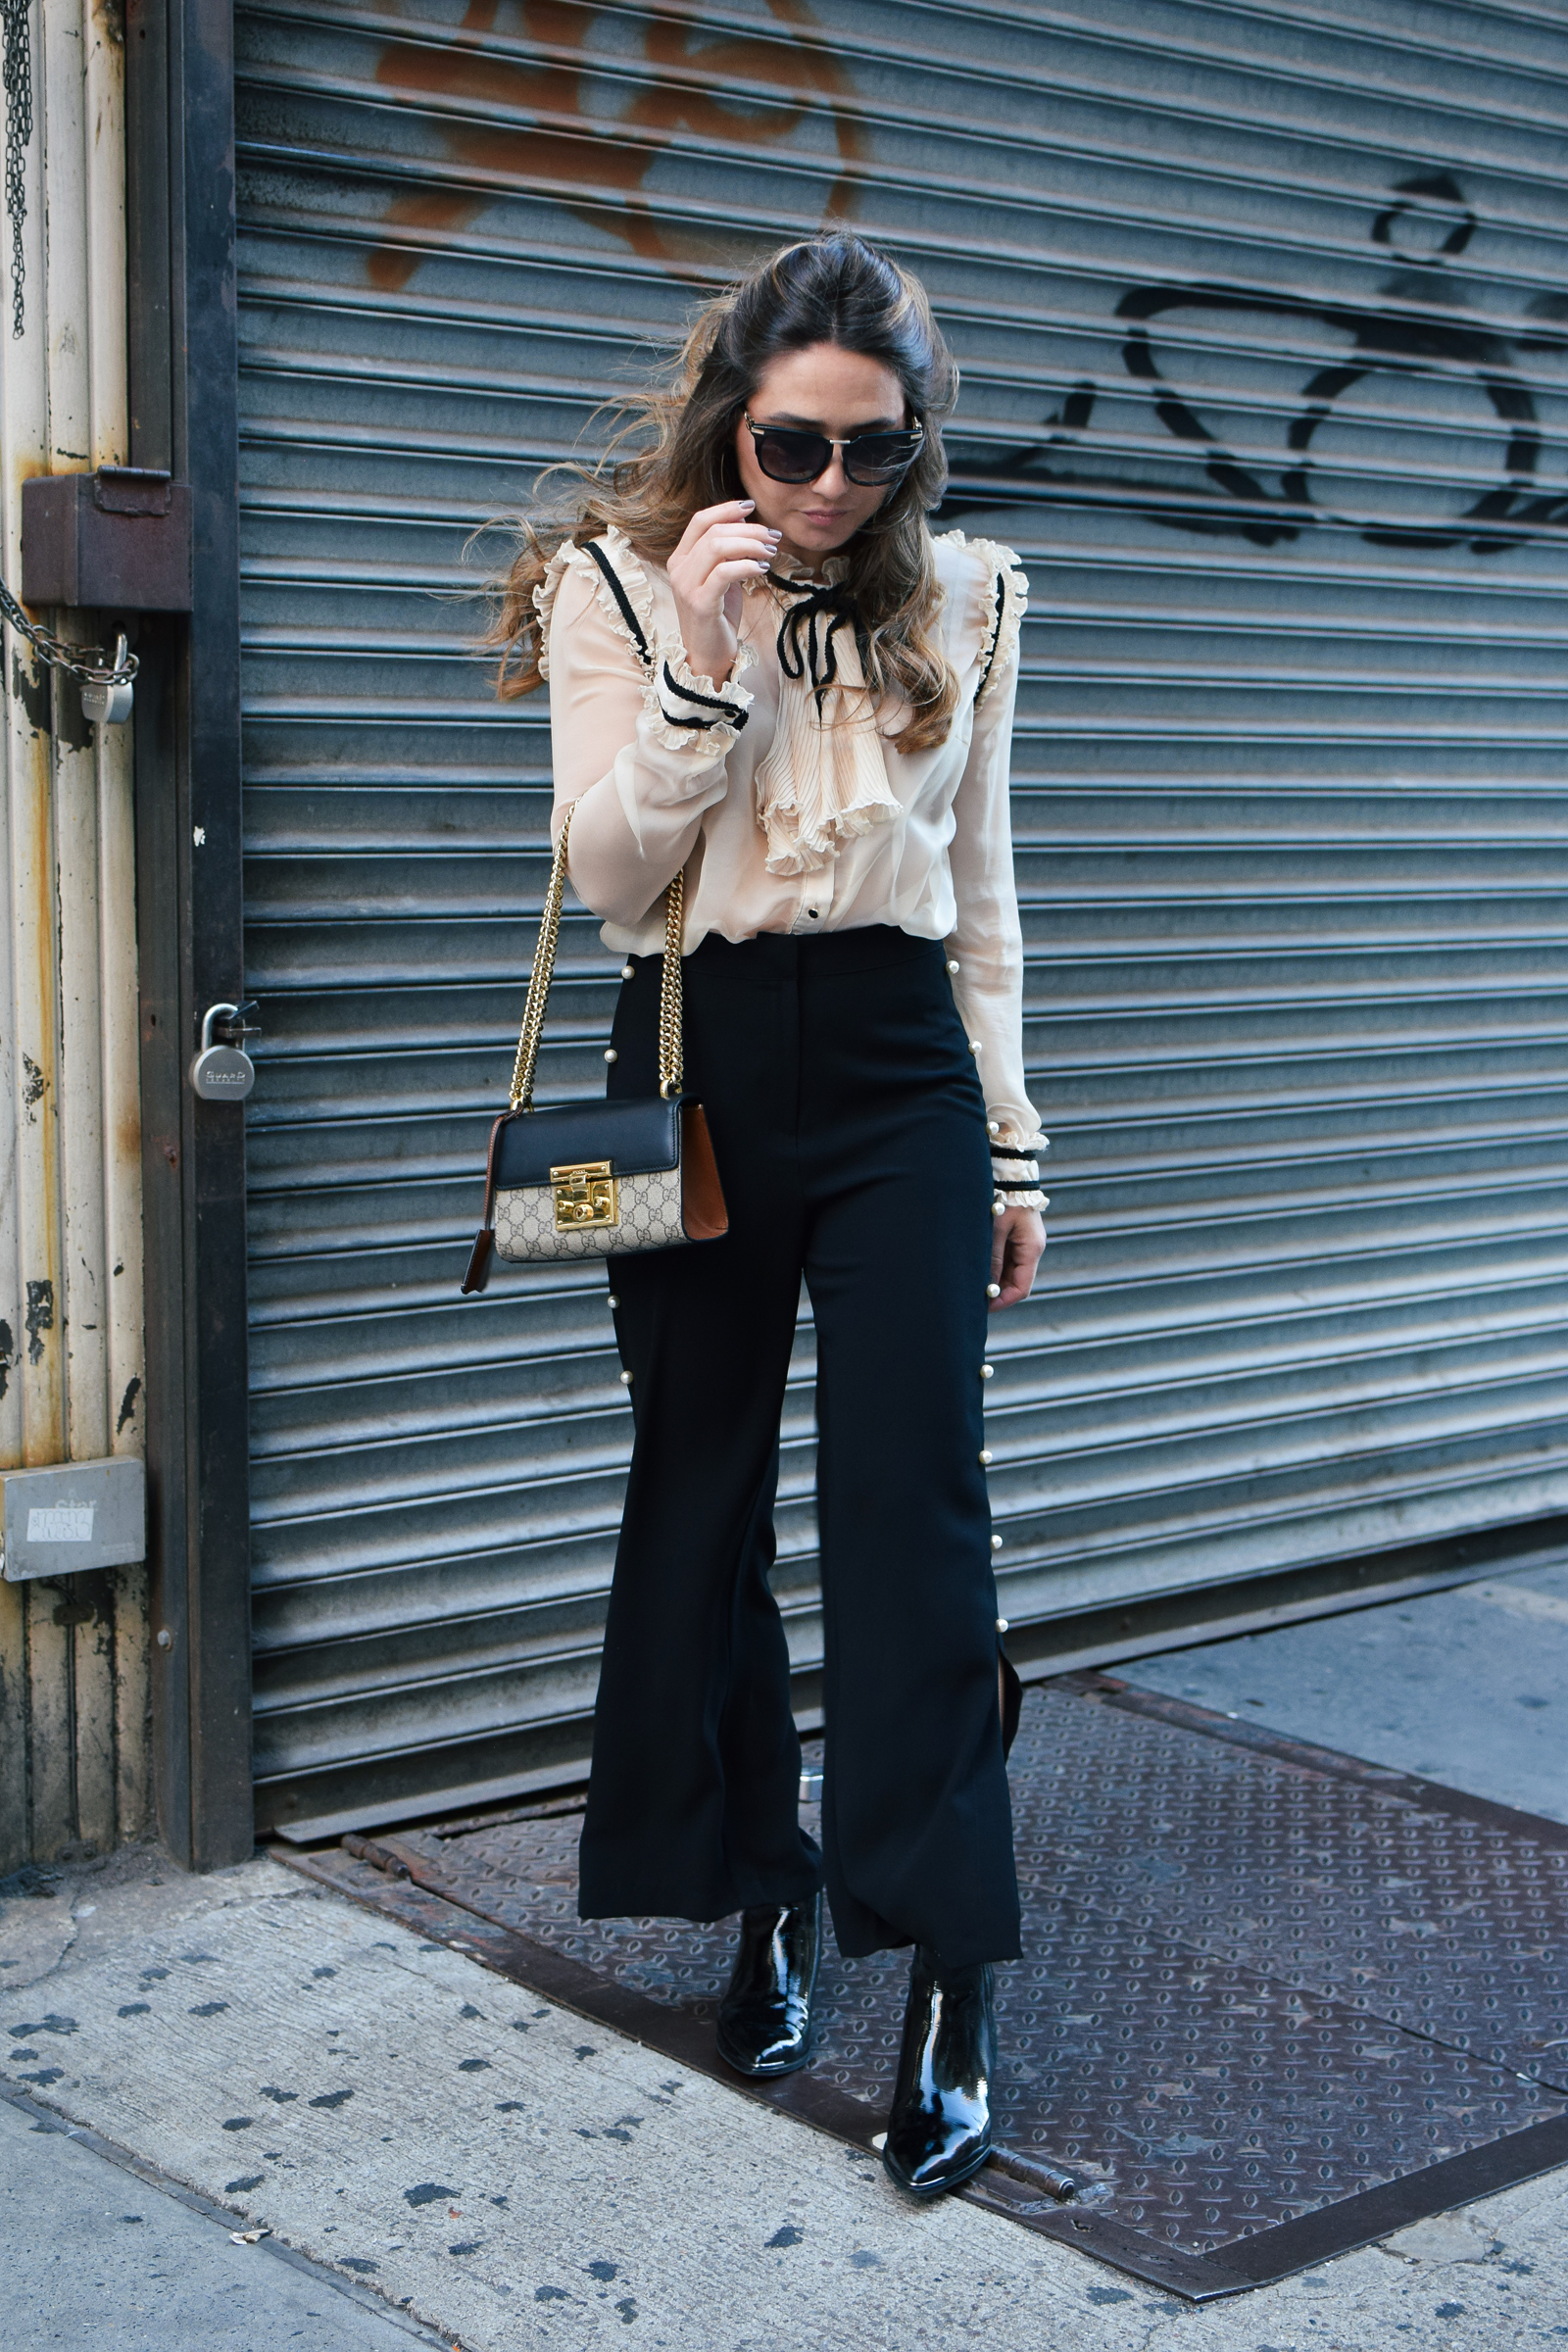 pearl-trousers-ruffle-blouse-nyfw-streetstyle-outfit-gucci-bag